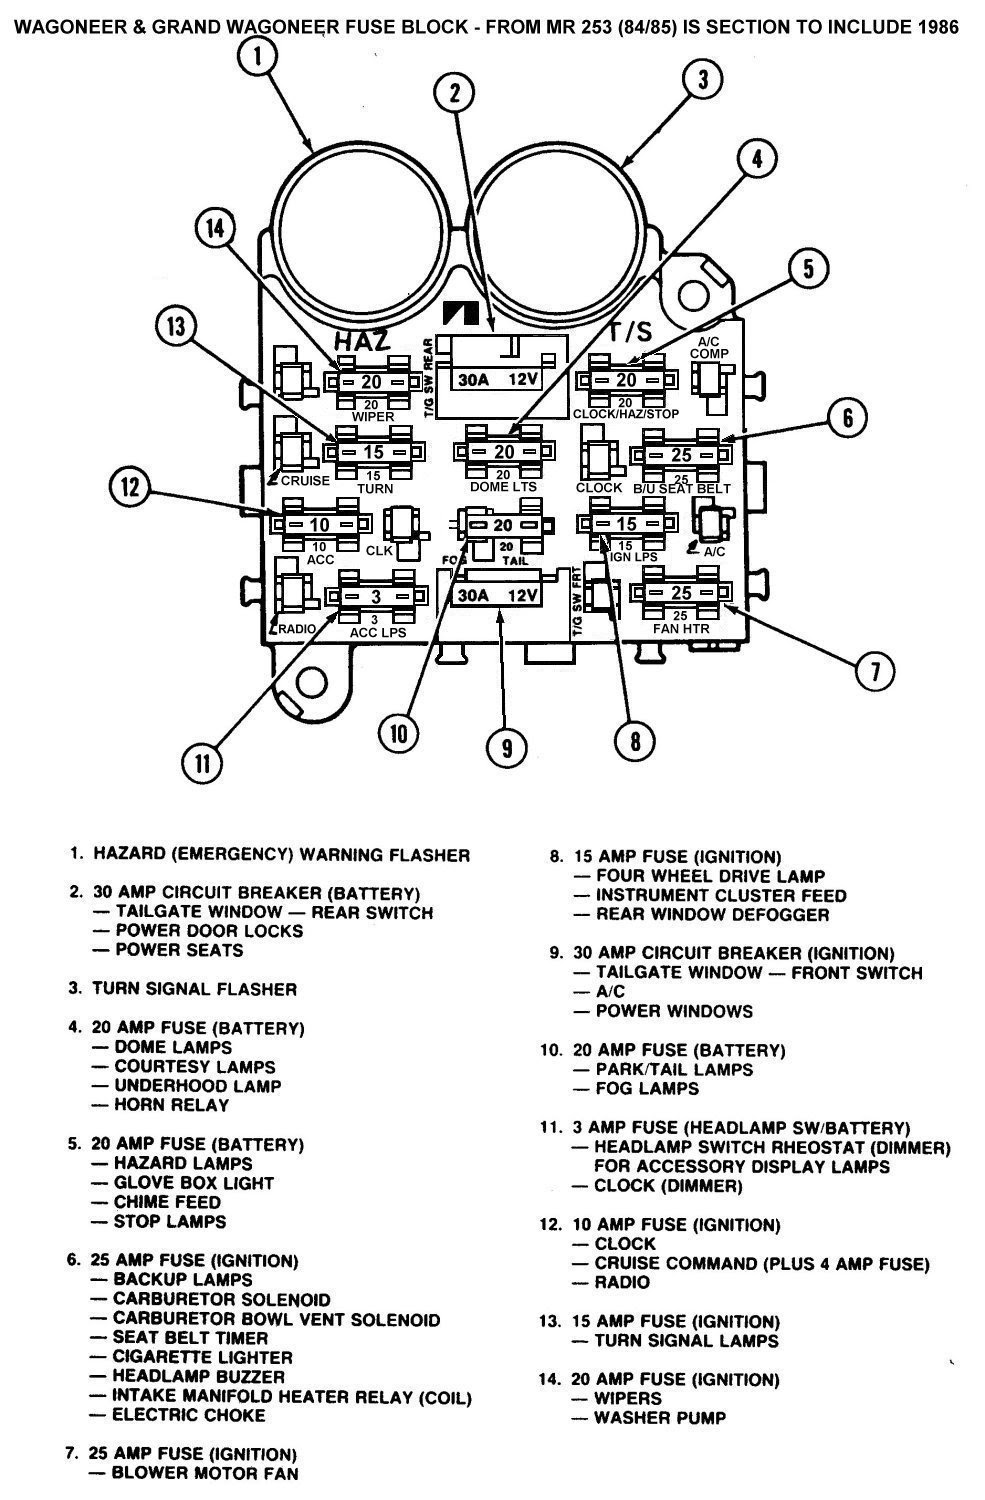 Jeep Cj7 Fuse Block Wiring Diagram 1966 Ford Mustang Fuse Box Diagram For Wiring Diagram Schematics